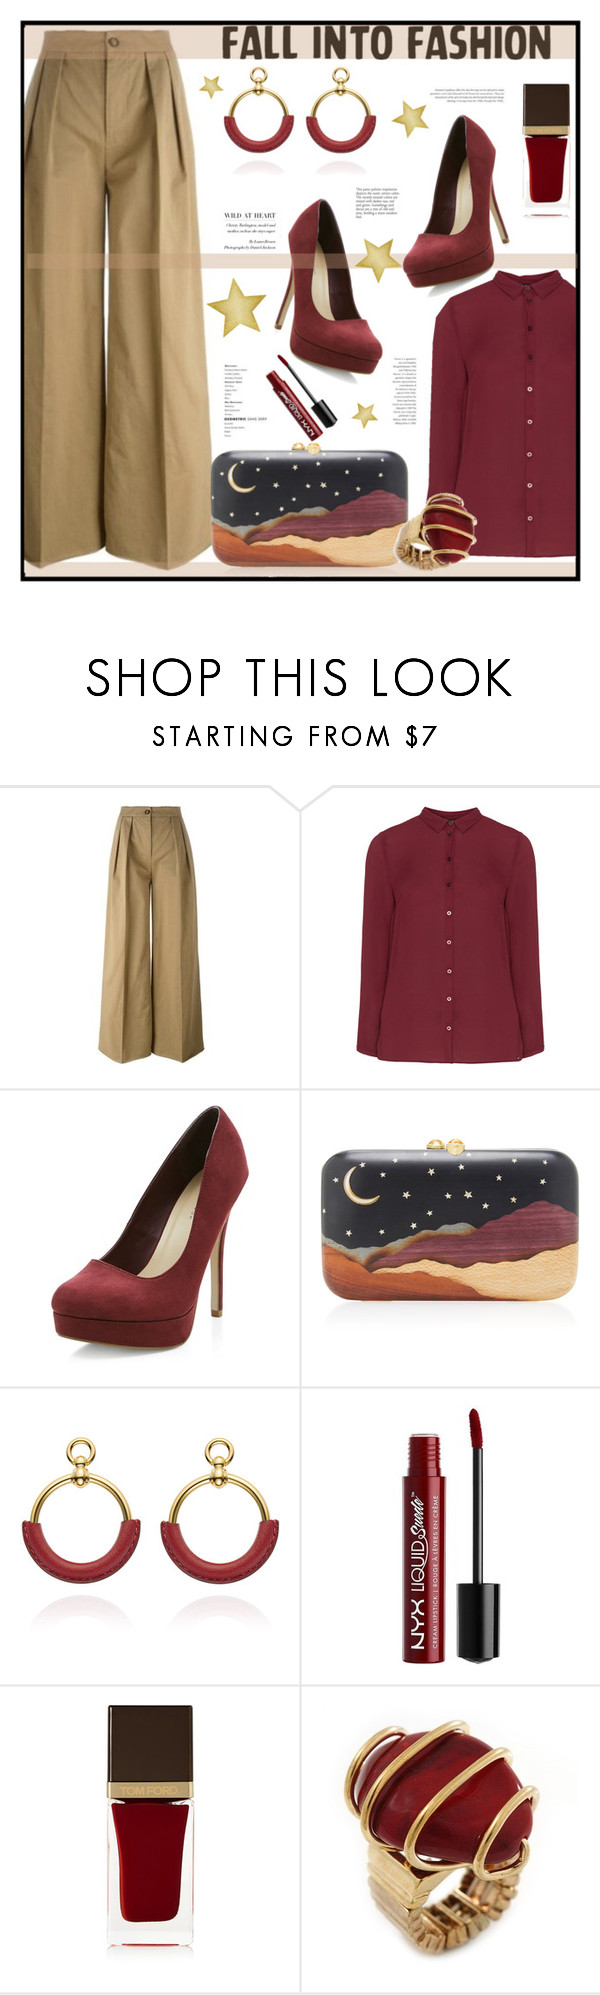 """""""Untitled #376"""" by riuk ❤ liked on Polyvore featuring Moncler, Jette, New Look, Silvia Furmanovich, Charlotte Russe and Tom Ford"""